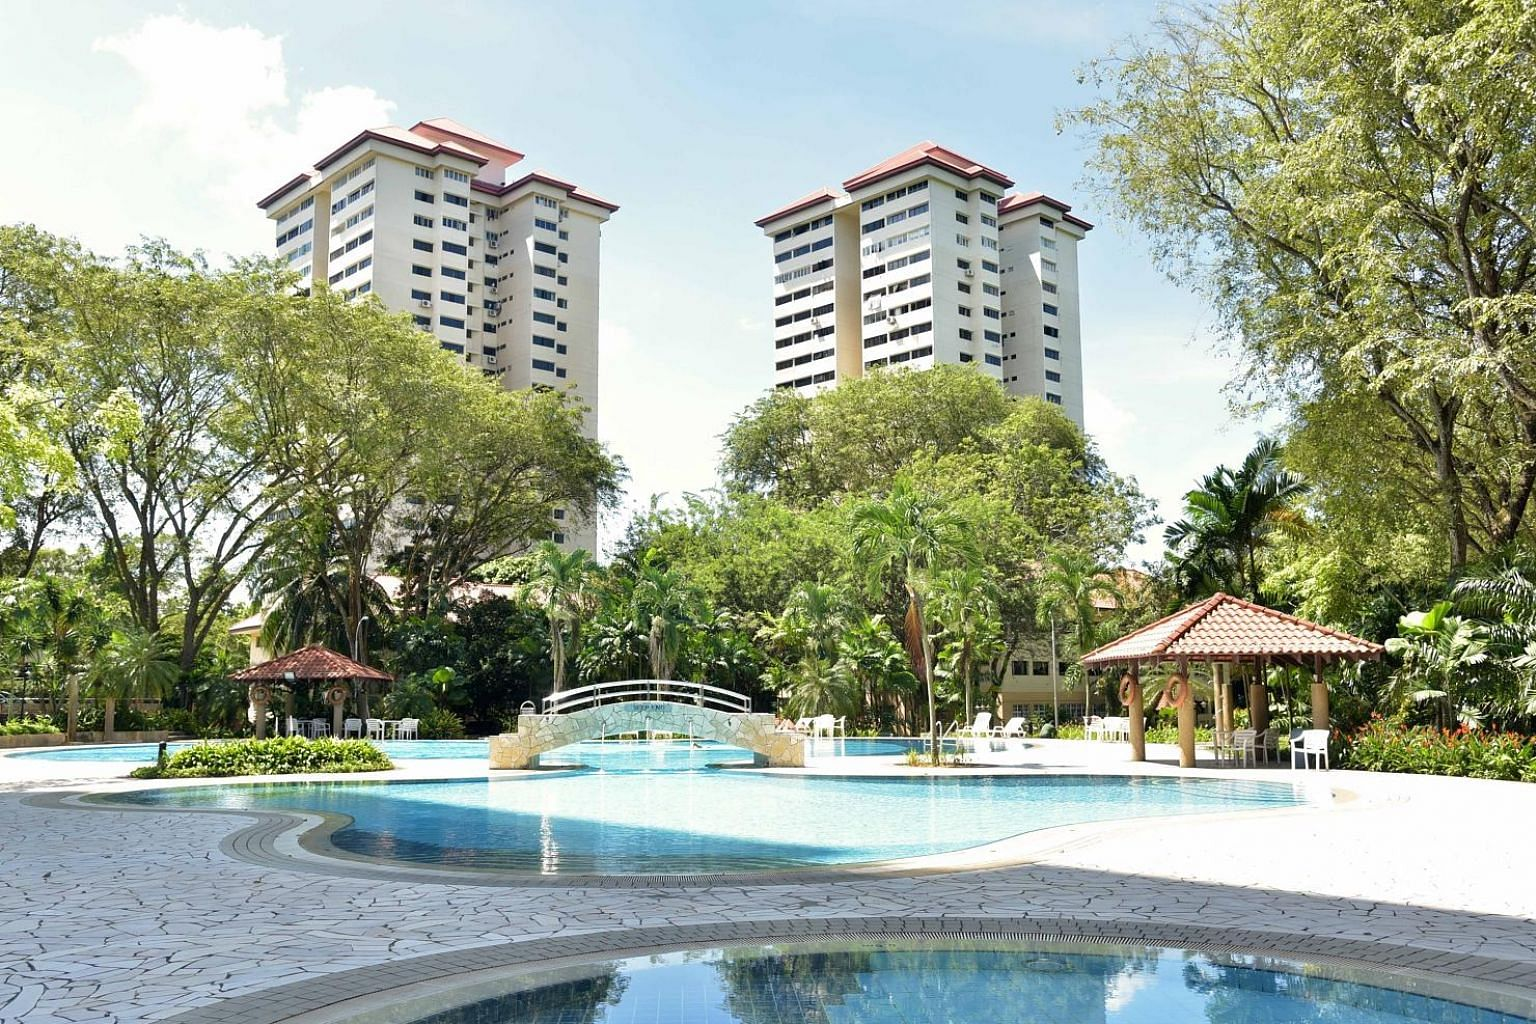 Normanton Park is a 488-unit project near Kent Ridge Park. Exclusive marketing agent Knight Frank Singapore's Ian Loh noted that there has not been any new high-rise residential development launched within a 1.5km radius in the last 15 years, leading